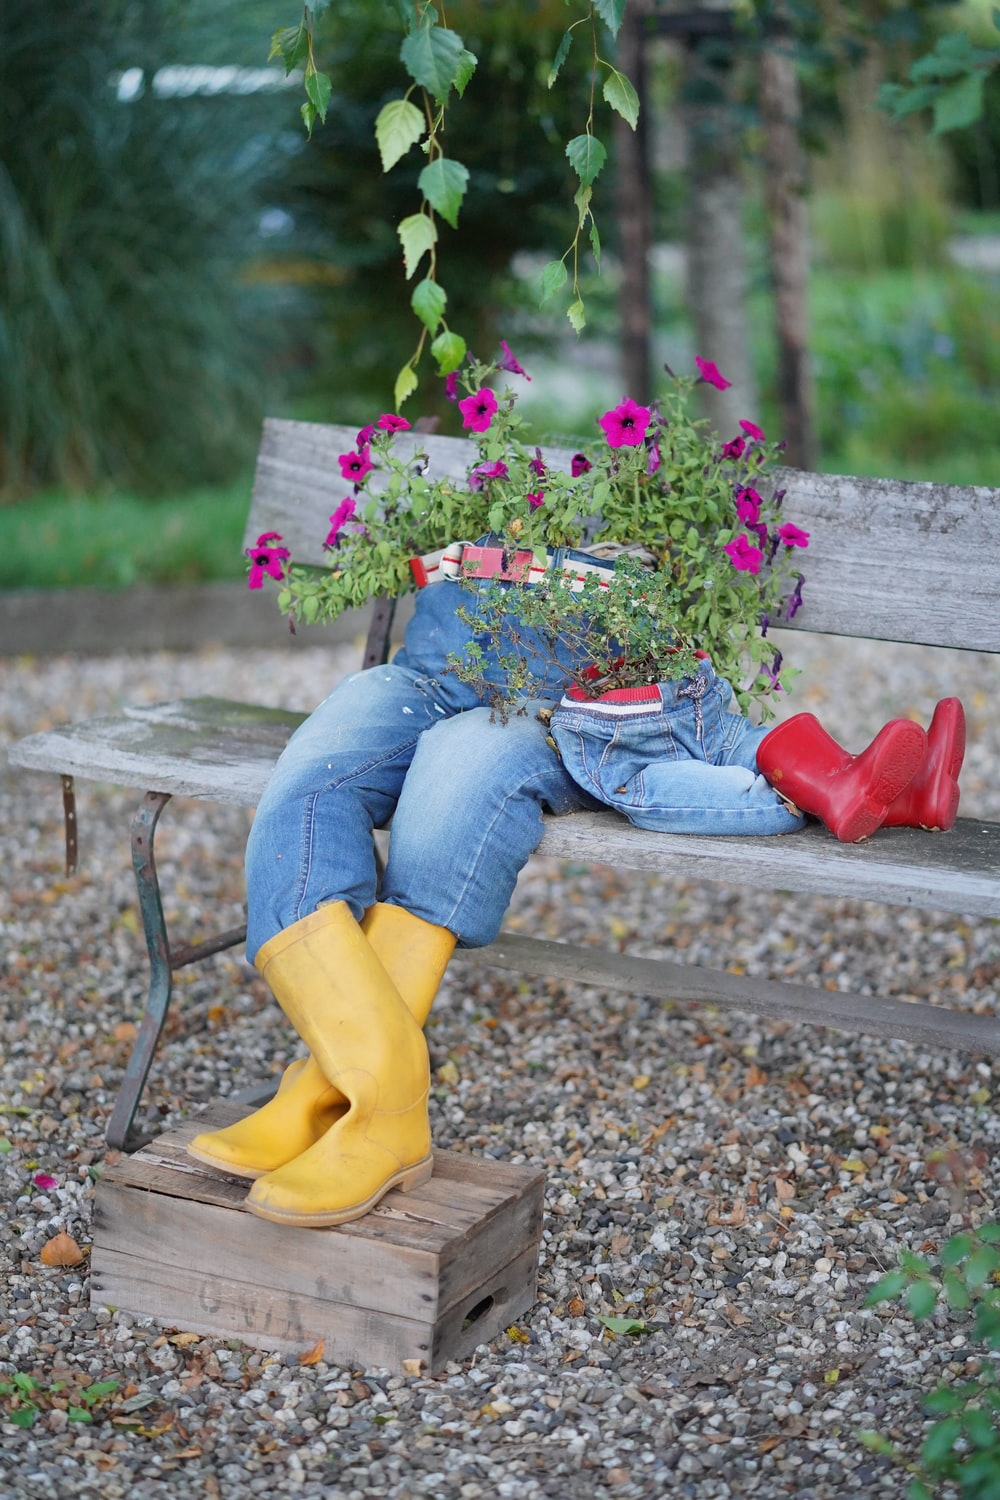 decorative potted plants with boots and jeans sitting on bench